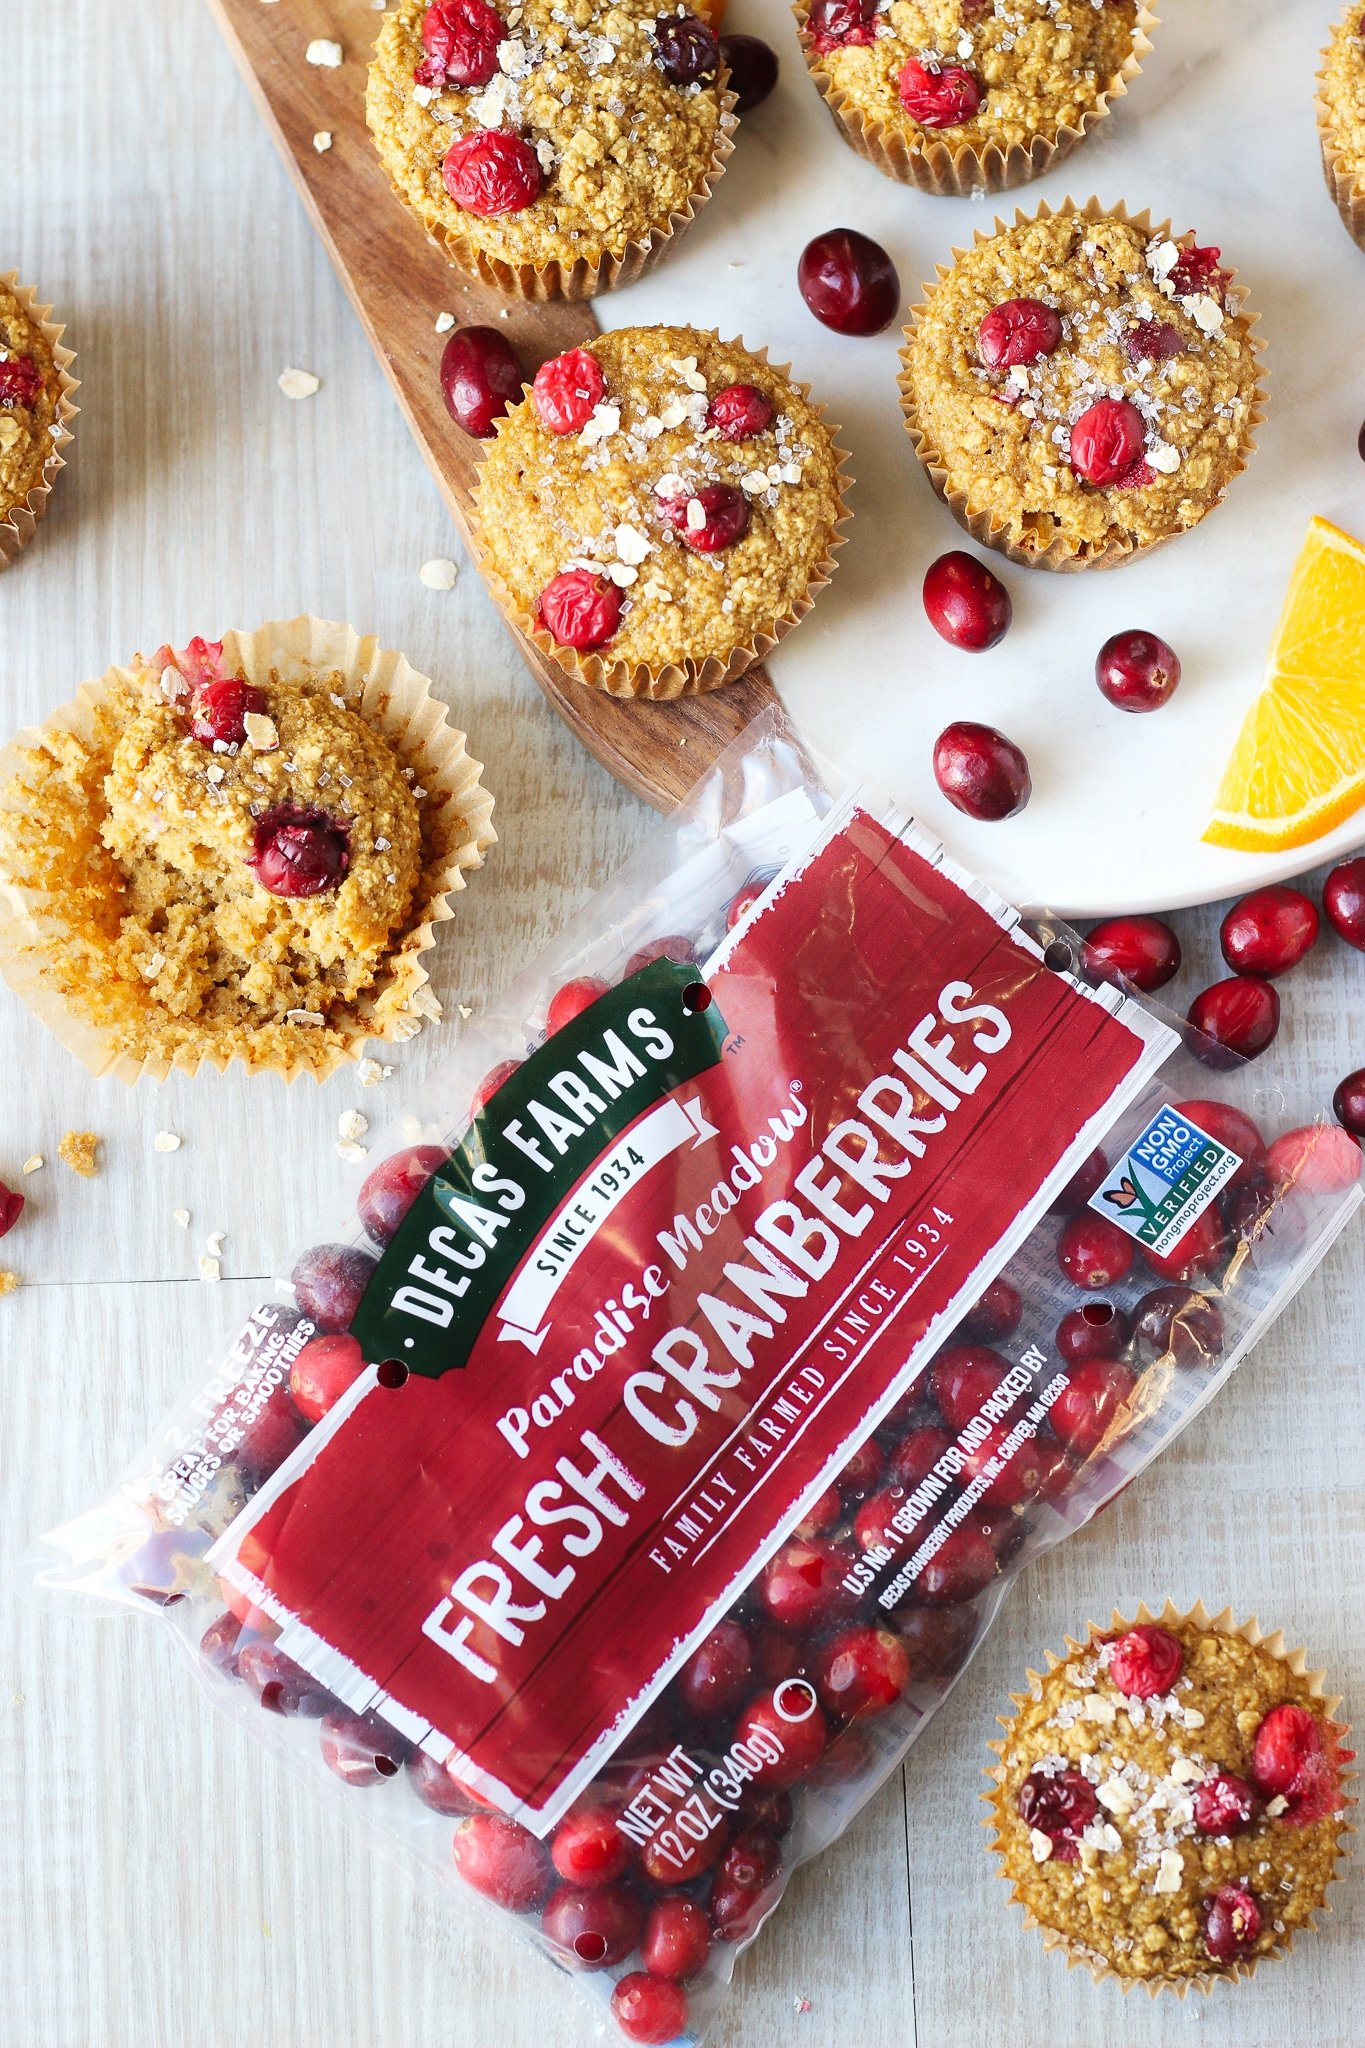 A pack of fresh Cranberries beside some muffins, fresh cranberries and orange slices